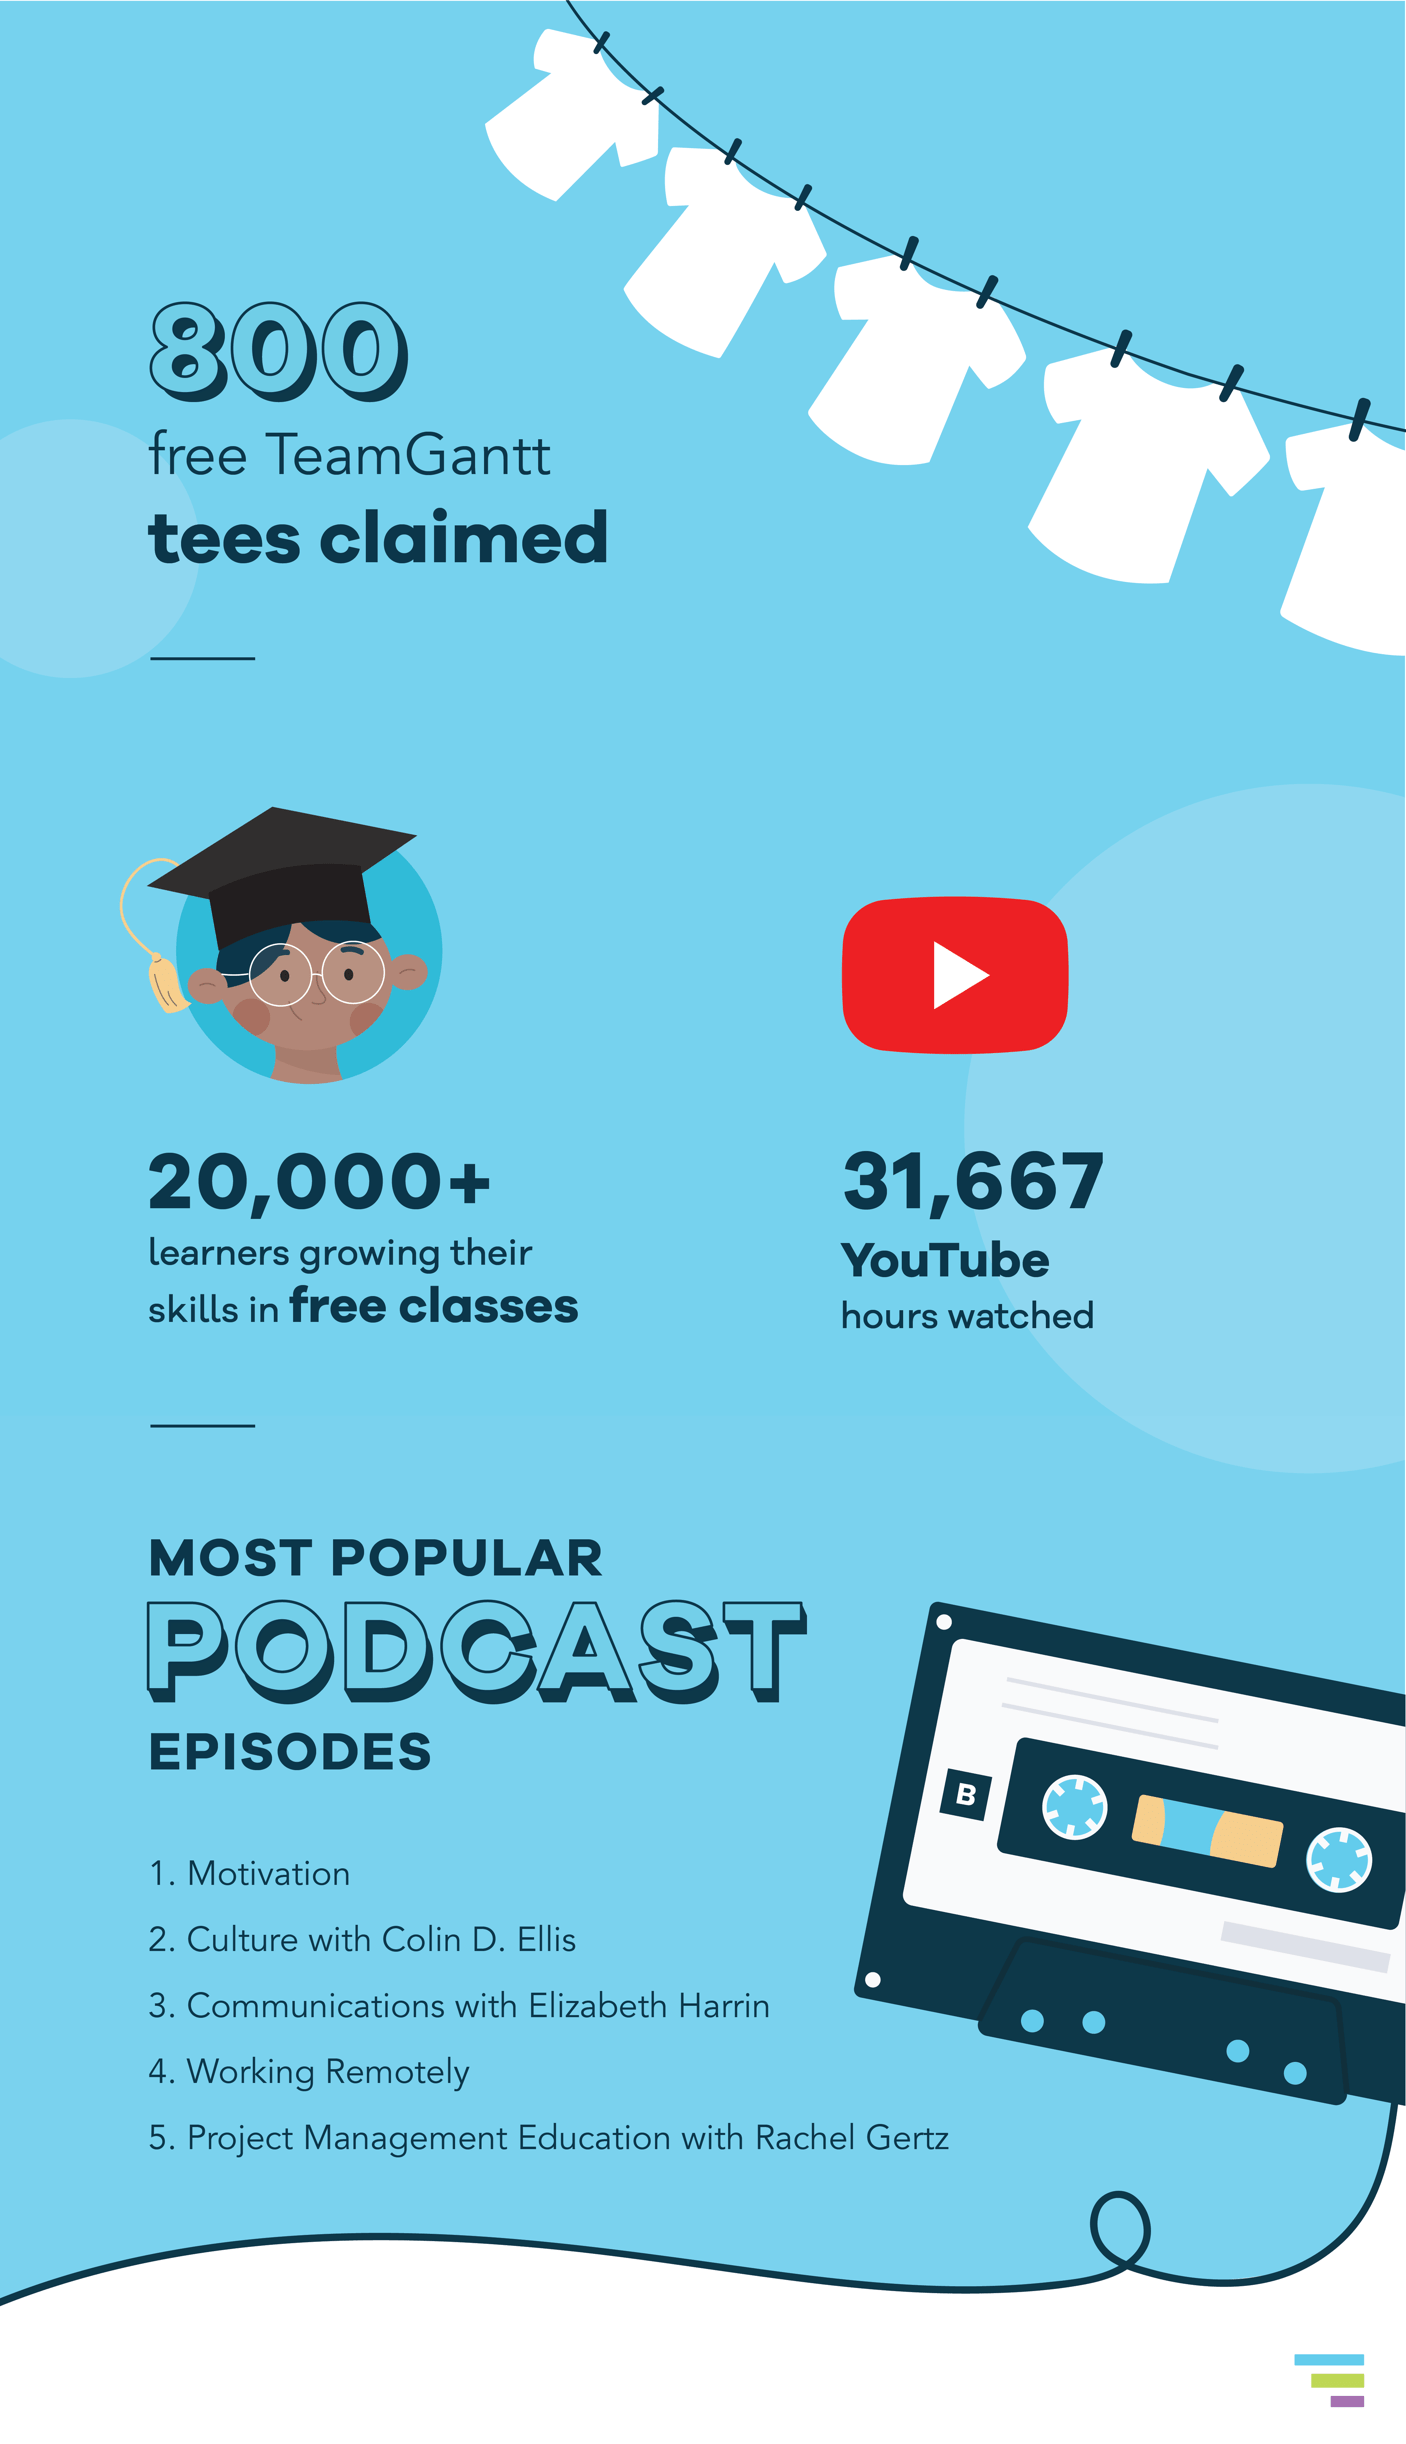 800 free TeamGantt tees claimed, 20,000+ learners growing their skills in free classes, 31,667 YouTube hours watched